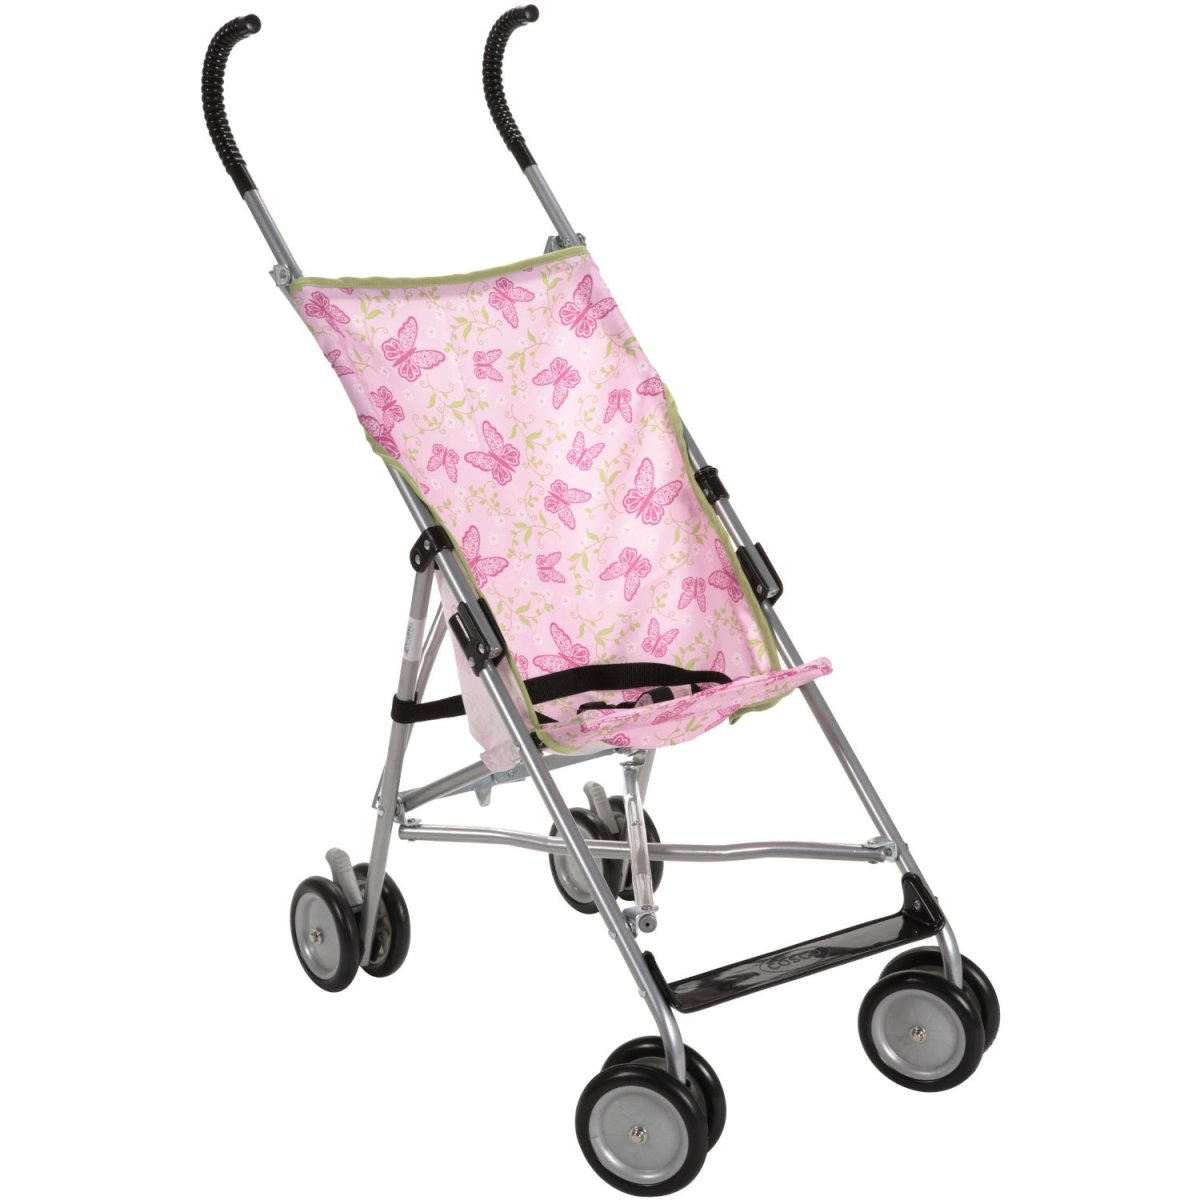 Cosco Stroller And Umbrella Stroller The Best Lightweight